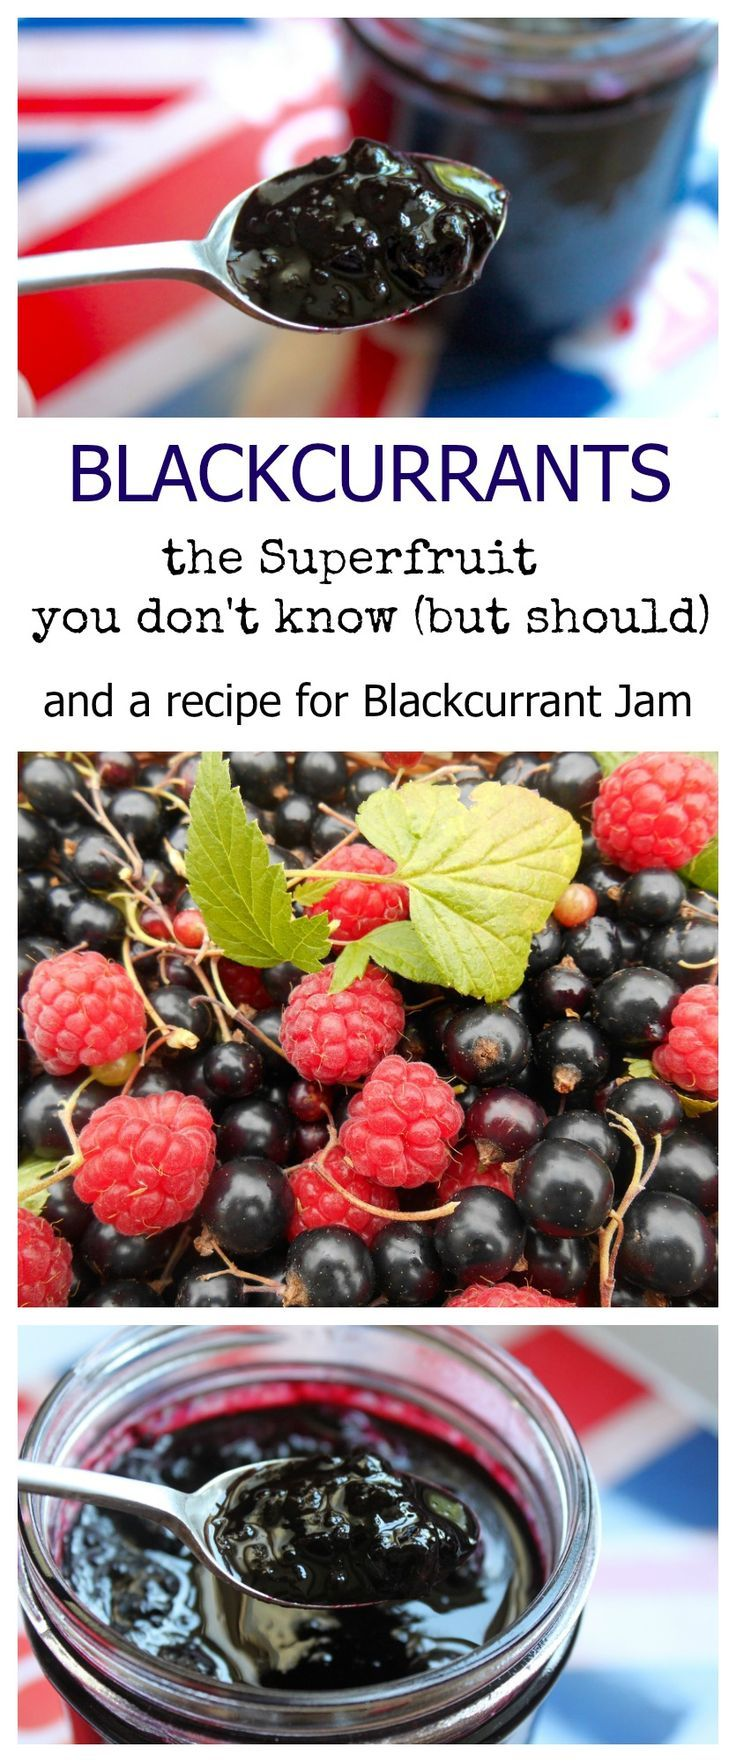 Blackcurrants: one of the best SUPERFRUITS ever, and a recipe for Blackcurrant Jam